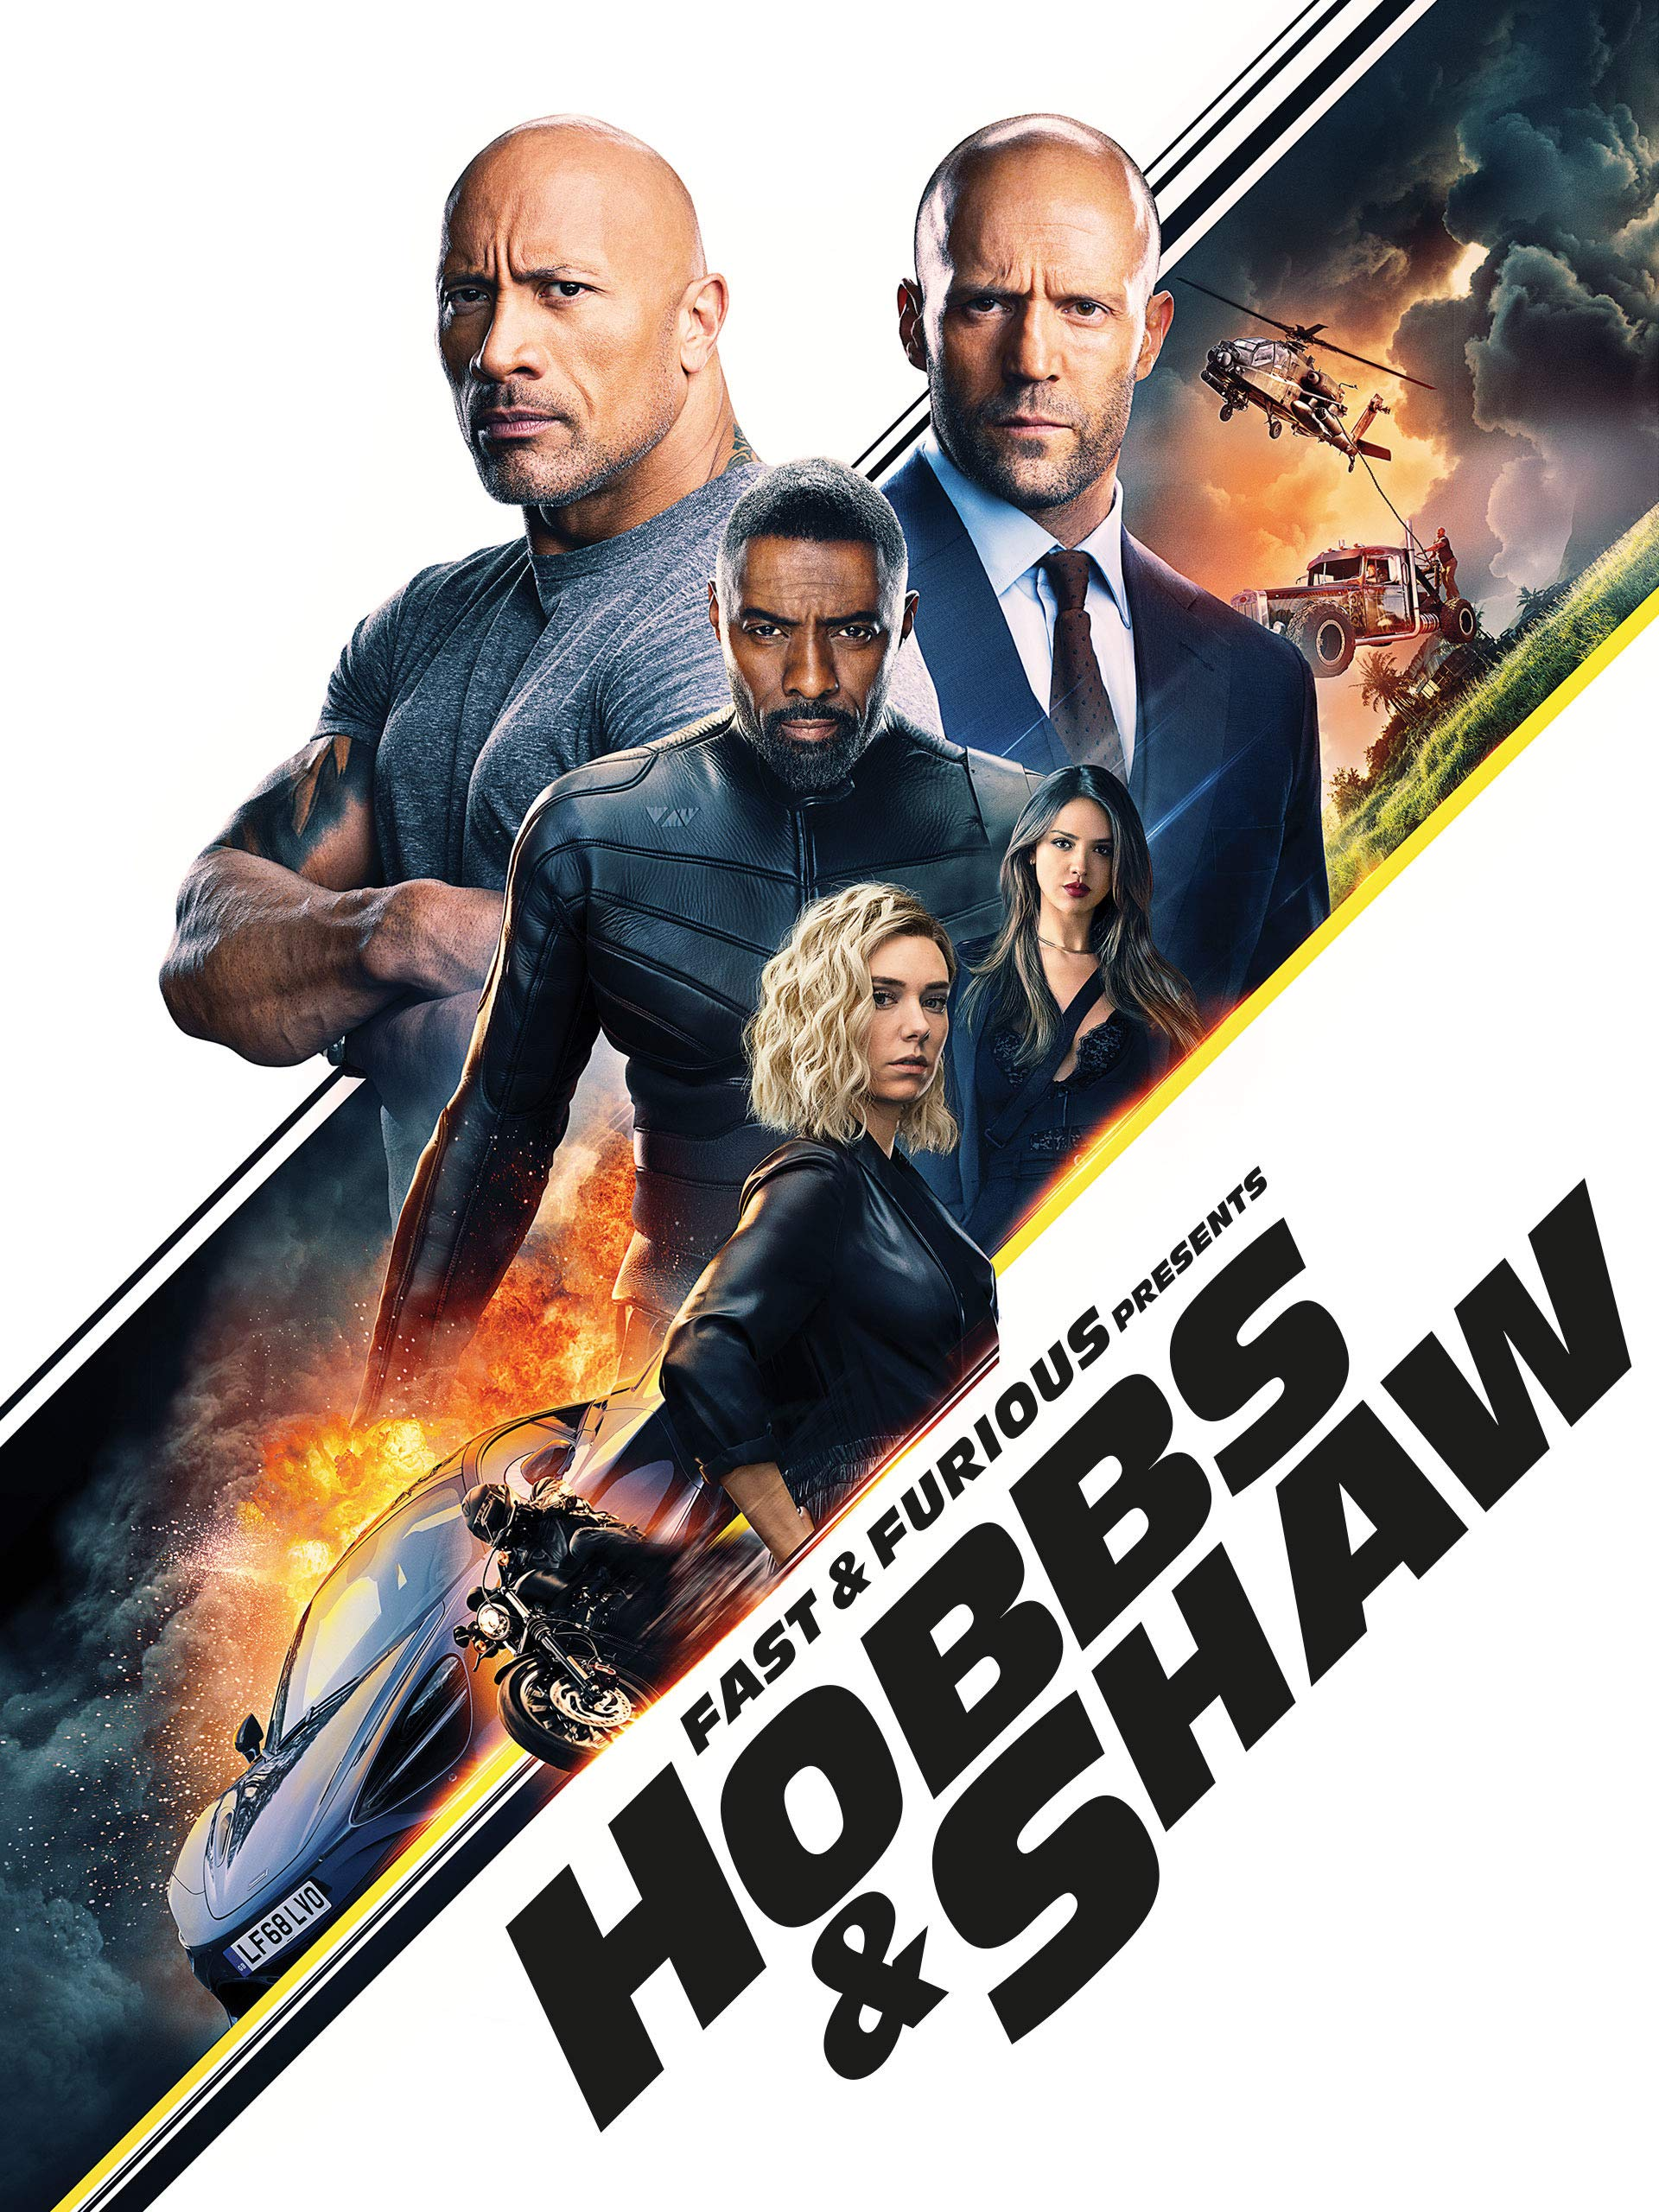 Watch Fast Furious Presents Hobbs Shaw Prime Video